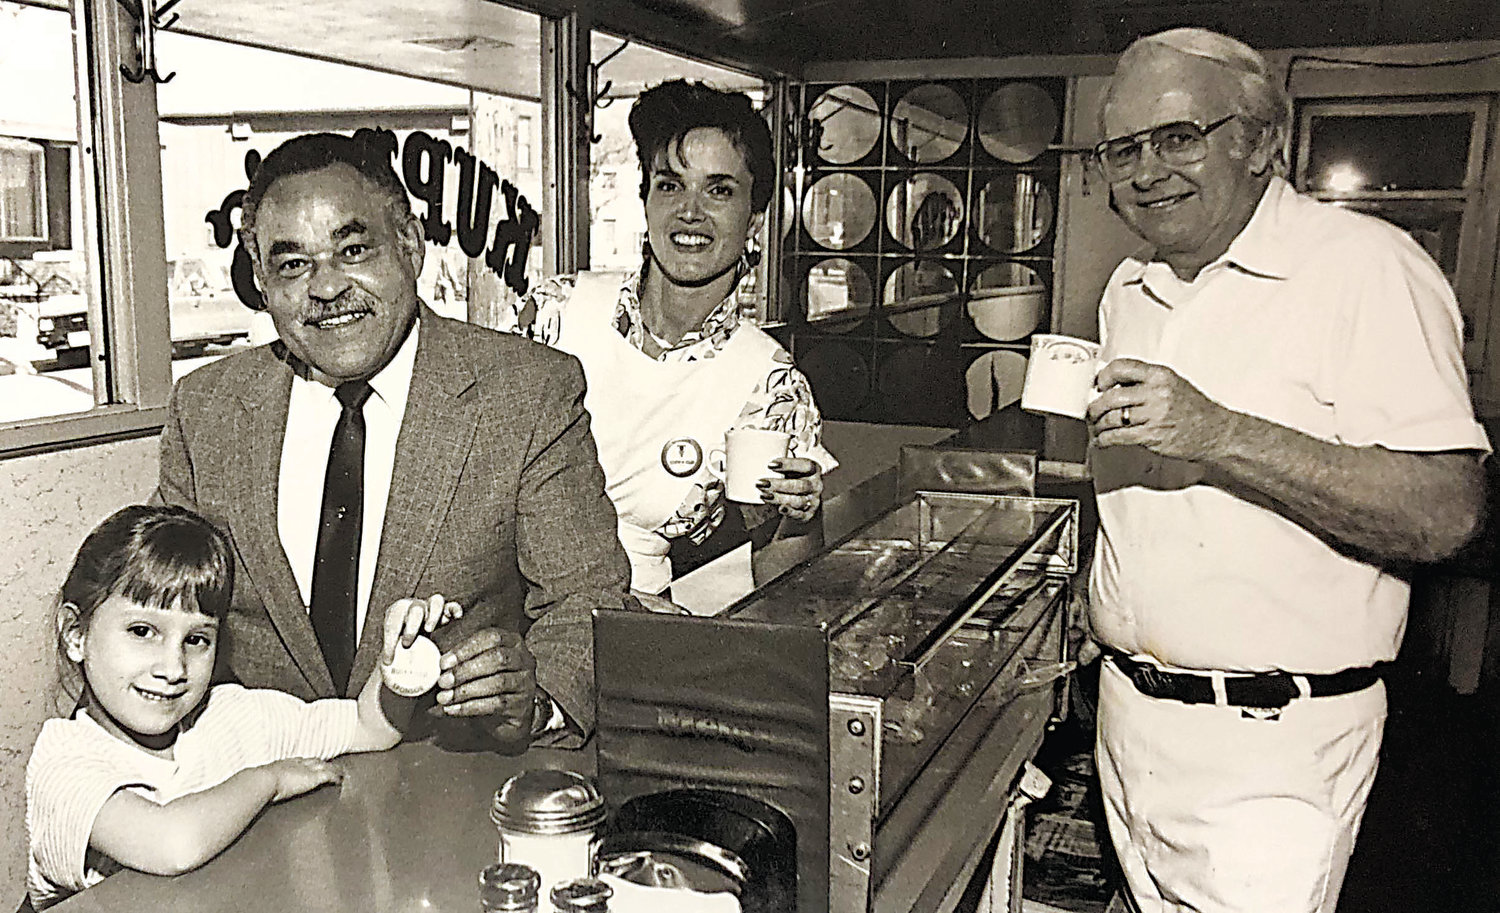 In this photo from the 1980s, Mayor Robert Reid poses with Carol Kupp and Karl Kupp at Kuppy's Diner. The girl on the left is unidentified.